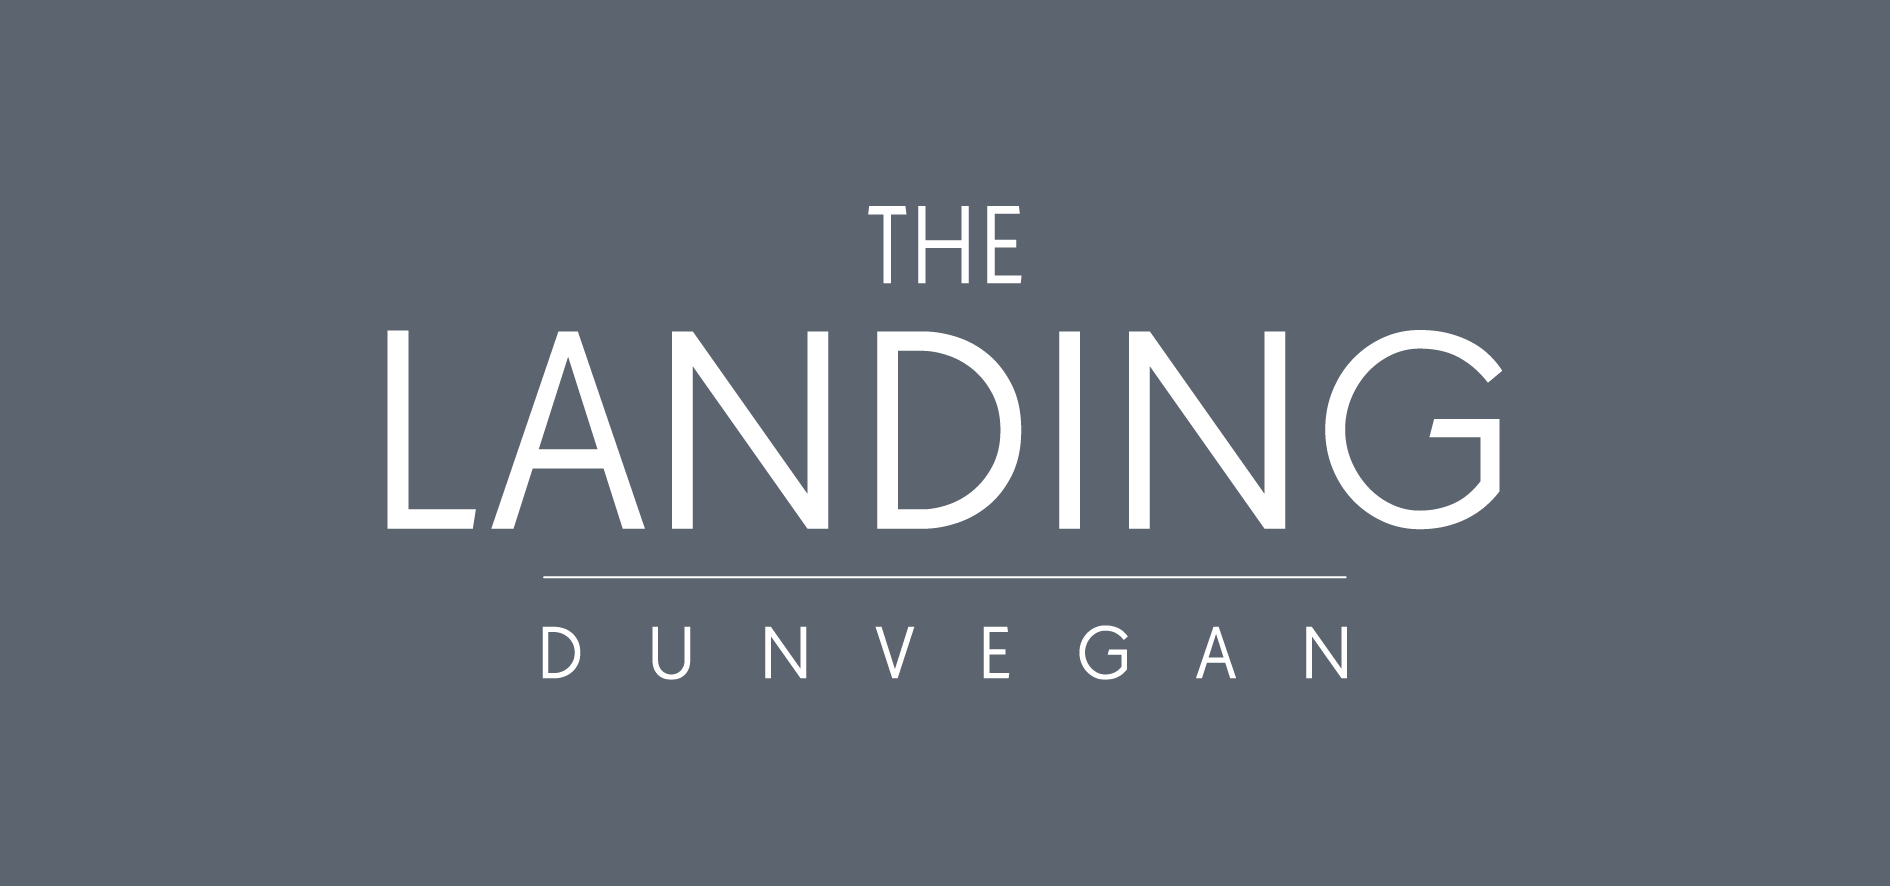 Coffee shop in Dunvegan, Edenvale, Johannesburg – The Landing